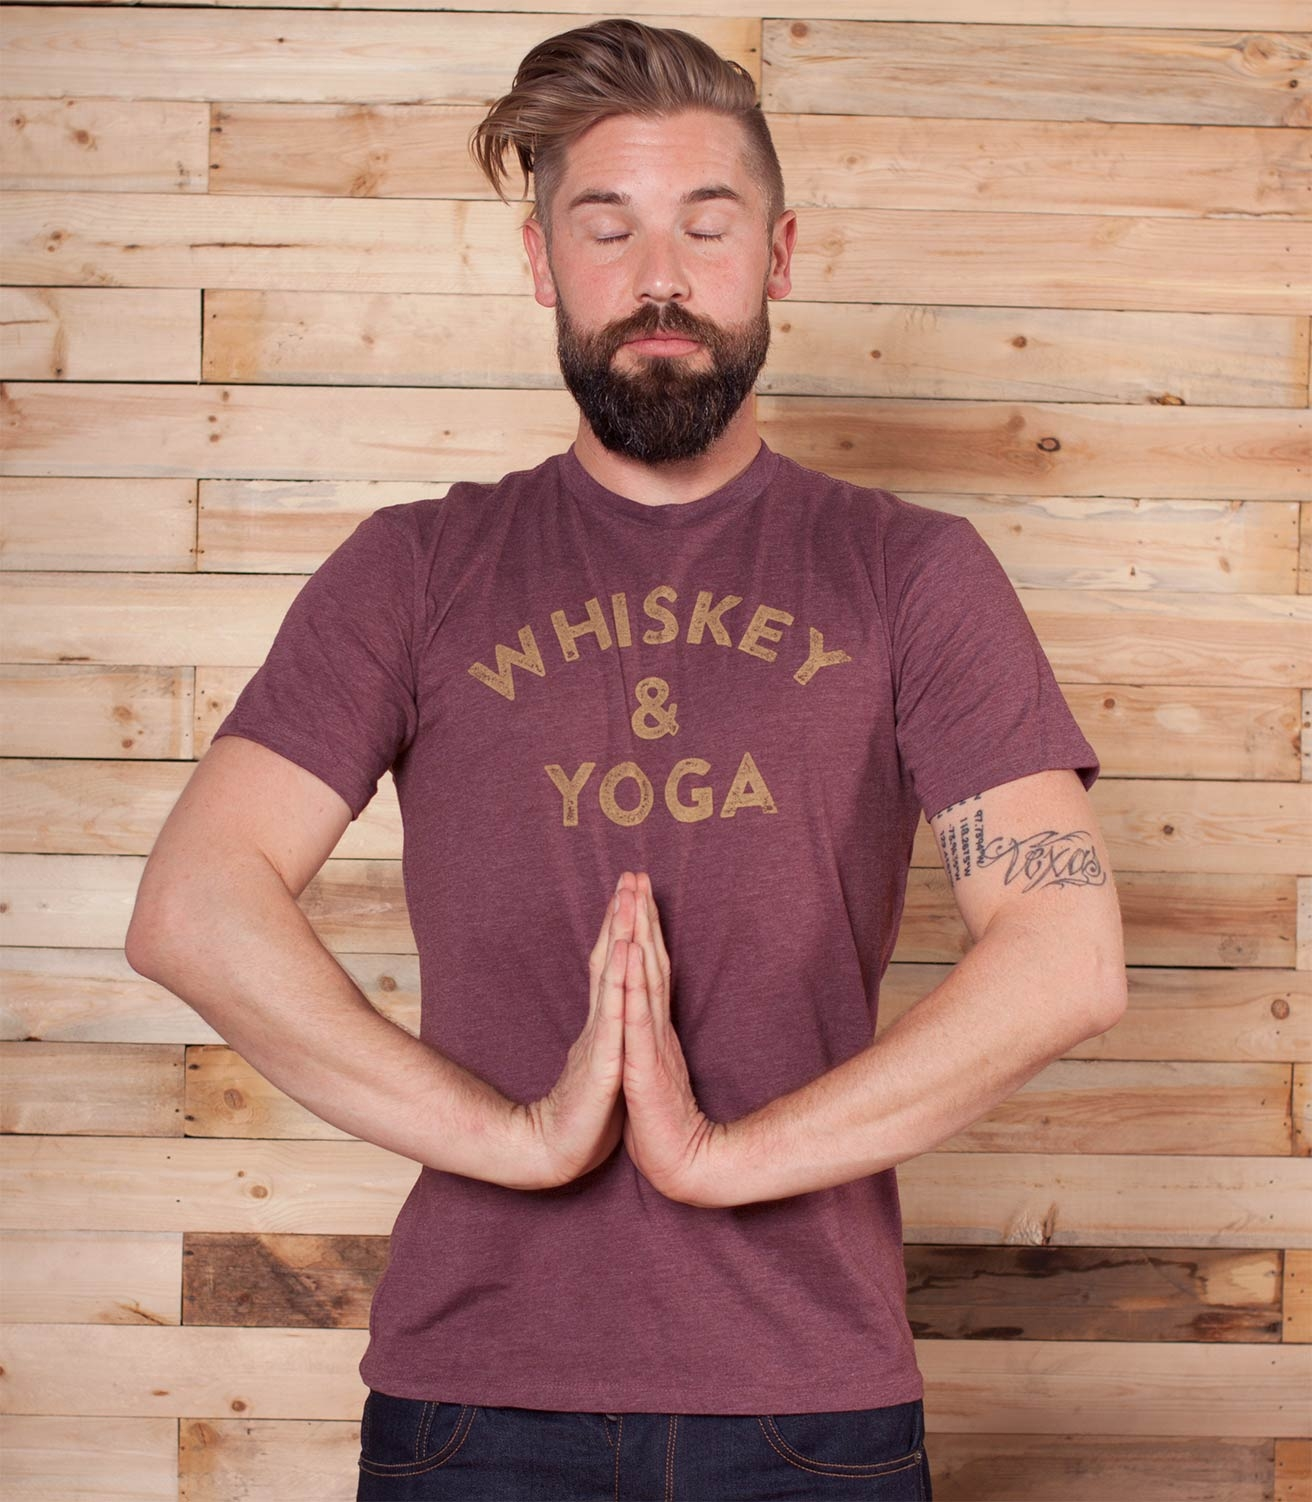 92271c288 Whiskey & Yoga Men's Funny Drinking T-Shirt | Headline Shirts